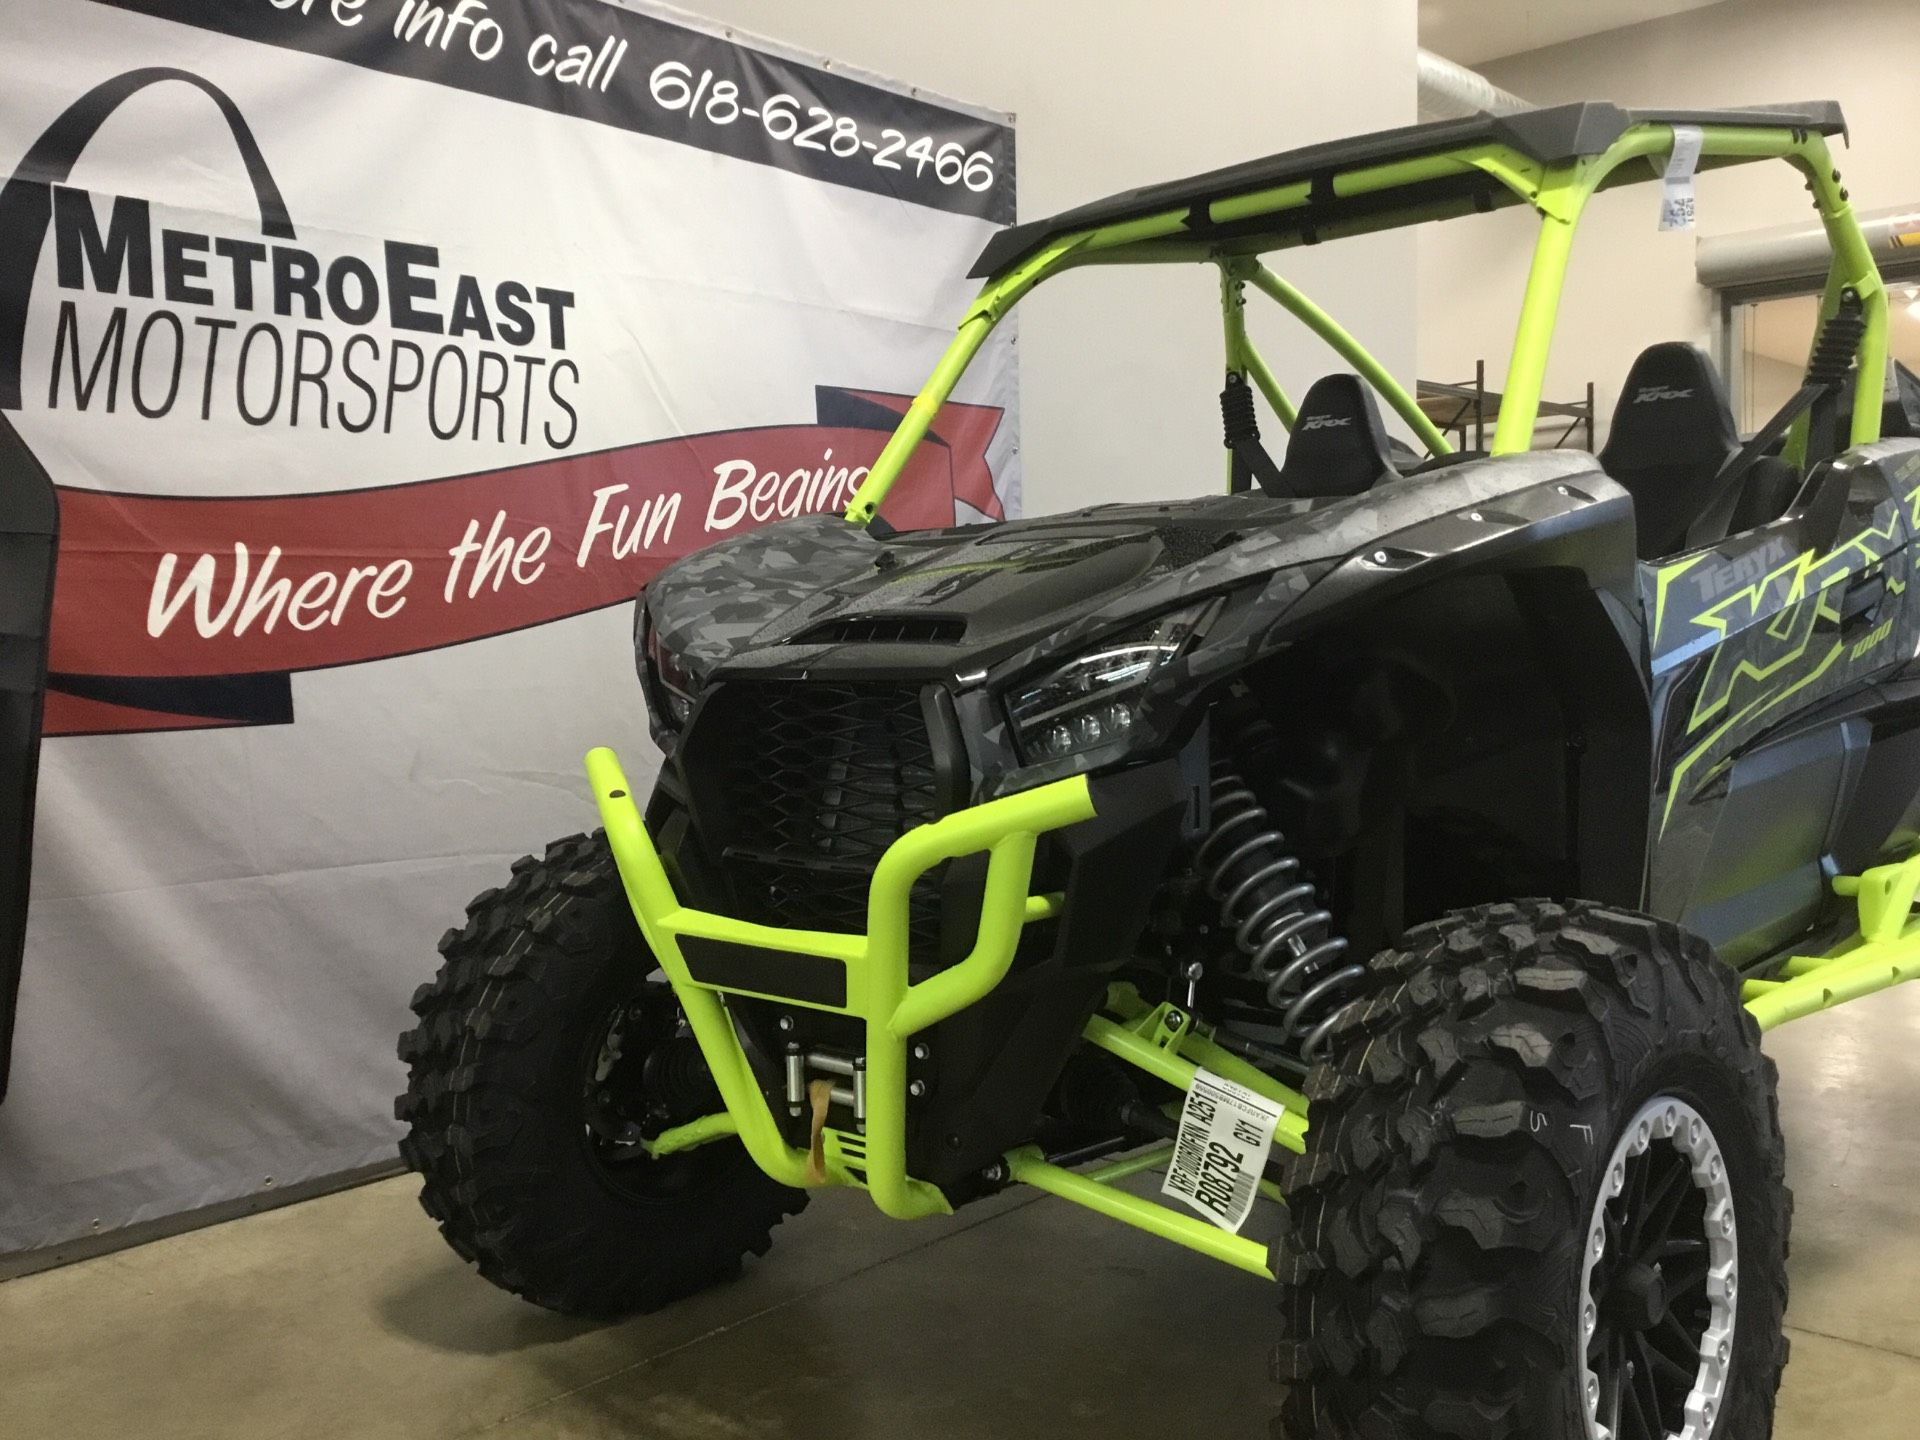 2021 Kawasaki Teryx KRX 1000 Trail Edition in O Fallon, Illinois - Photo 2